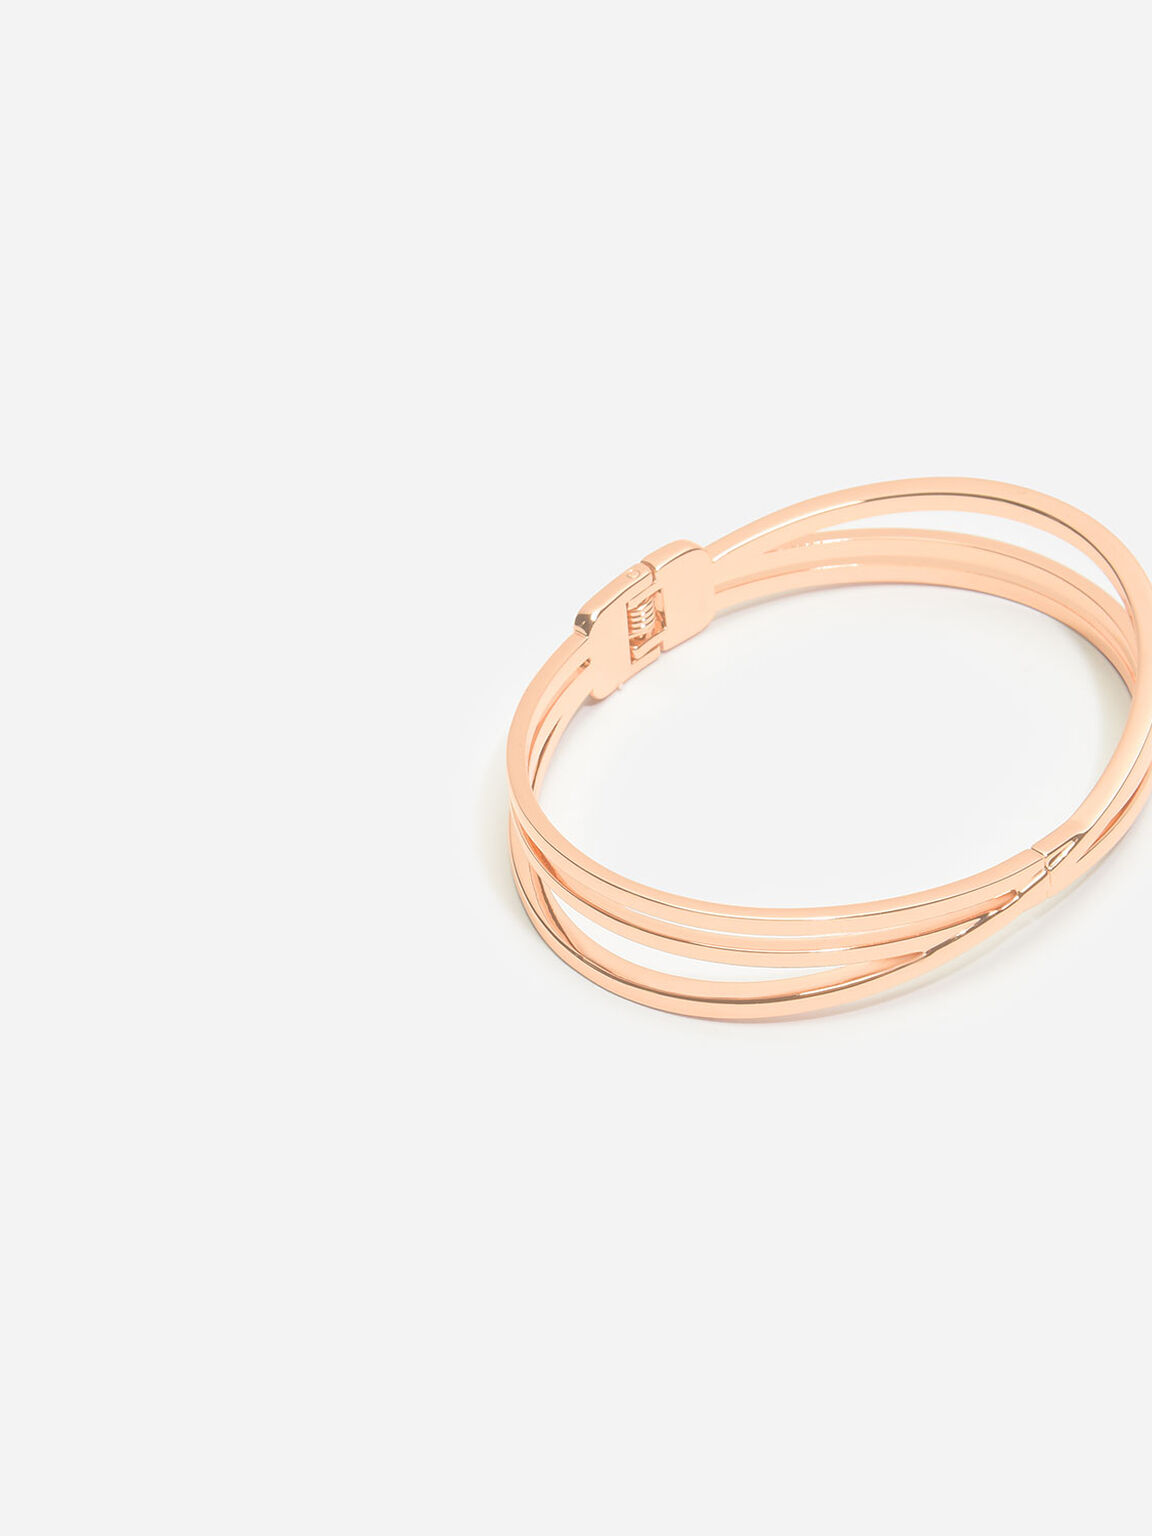 Criss Cross Bangle, Rose Gold, hi-res